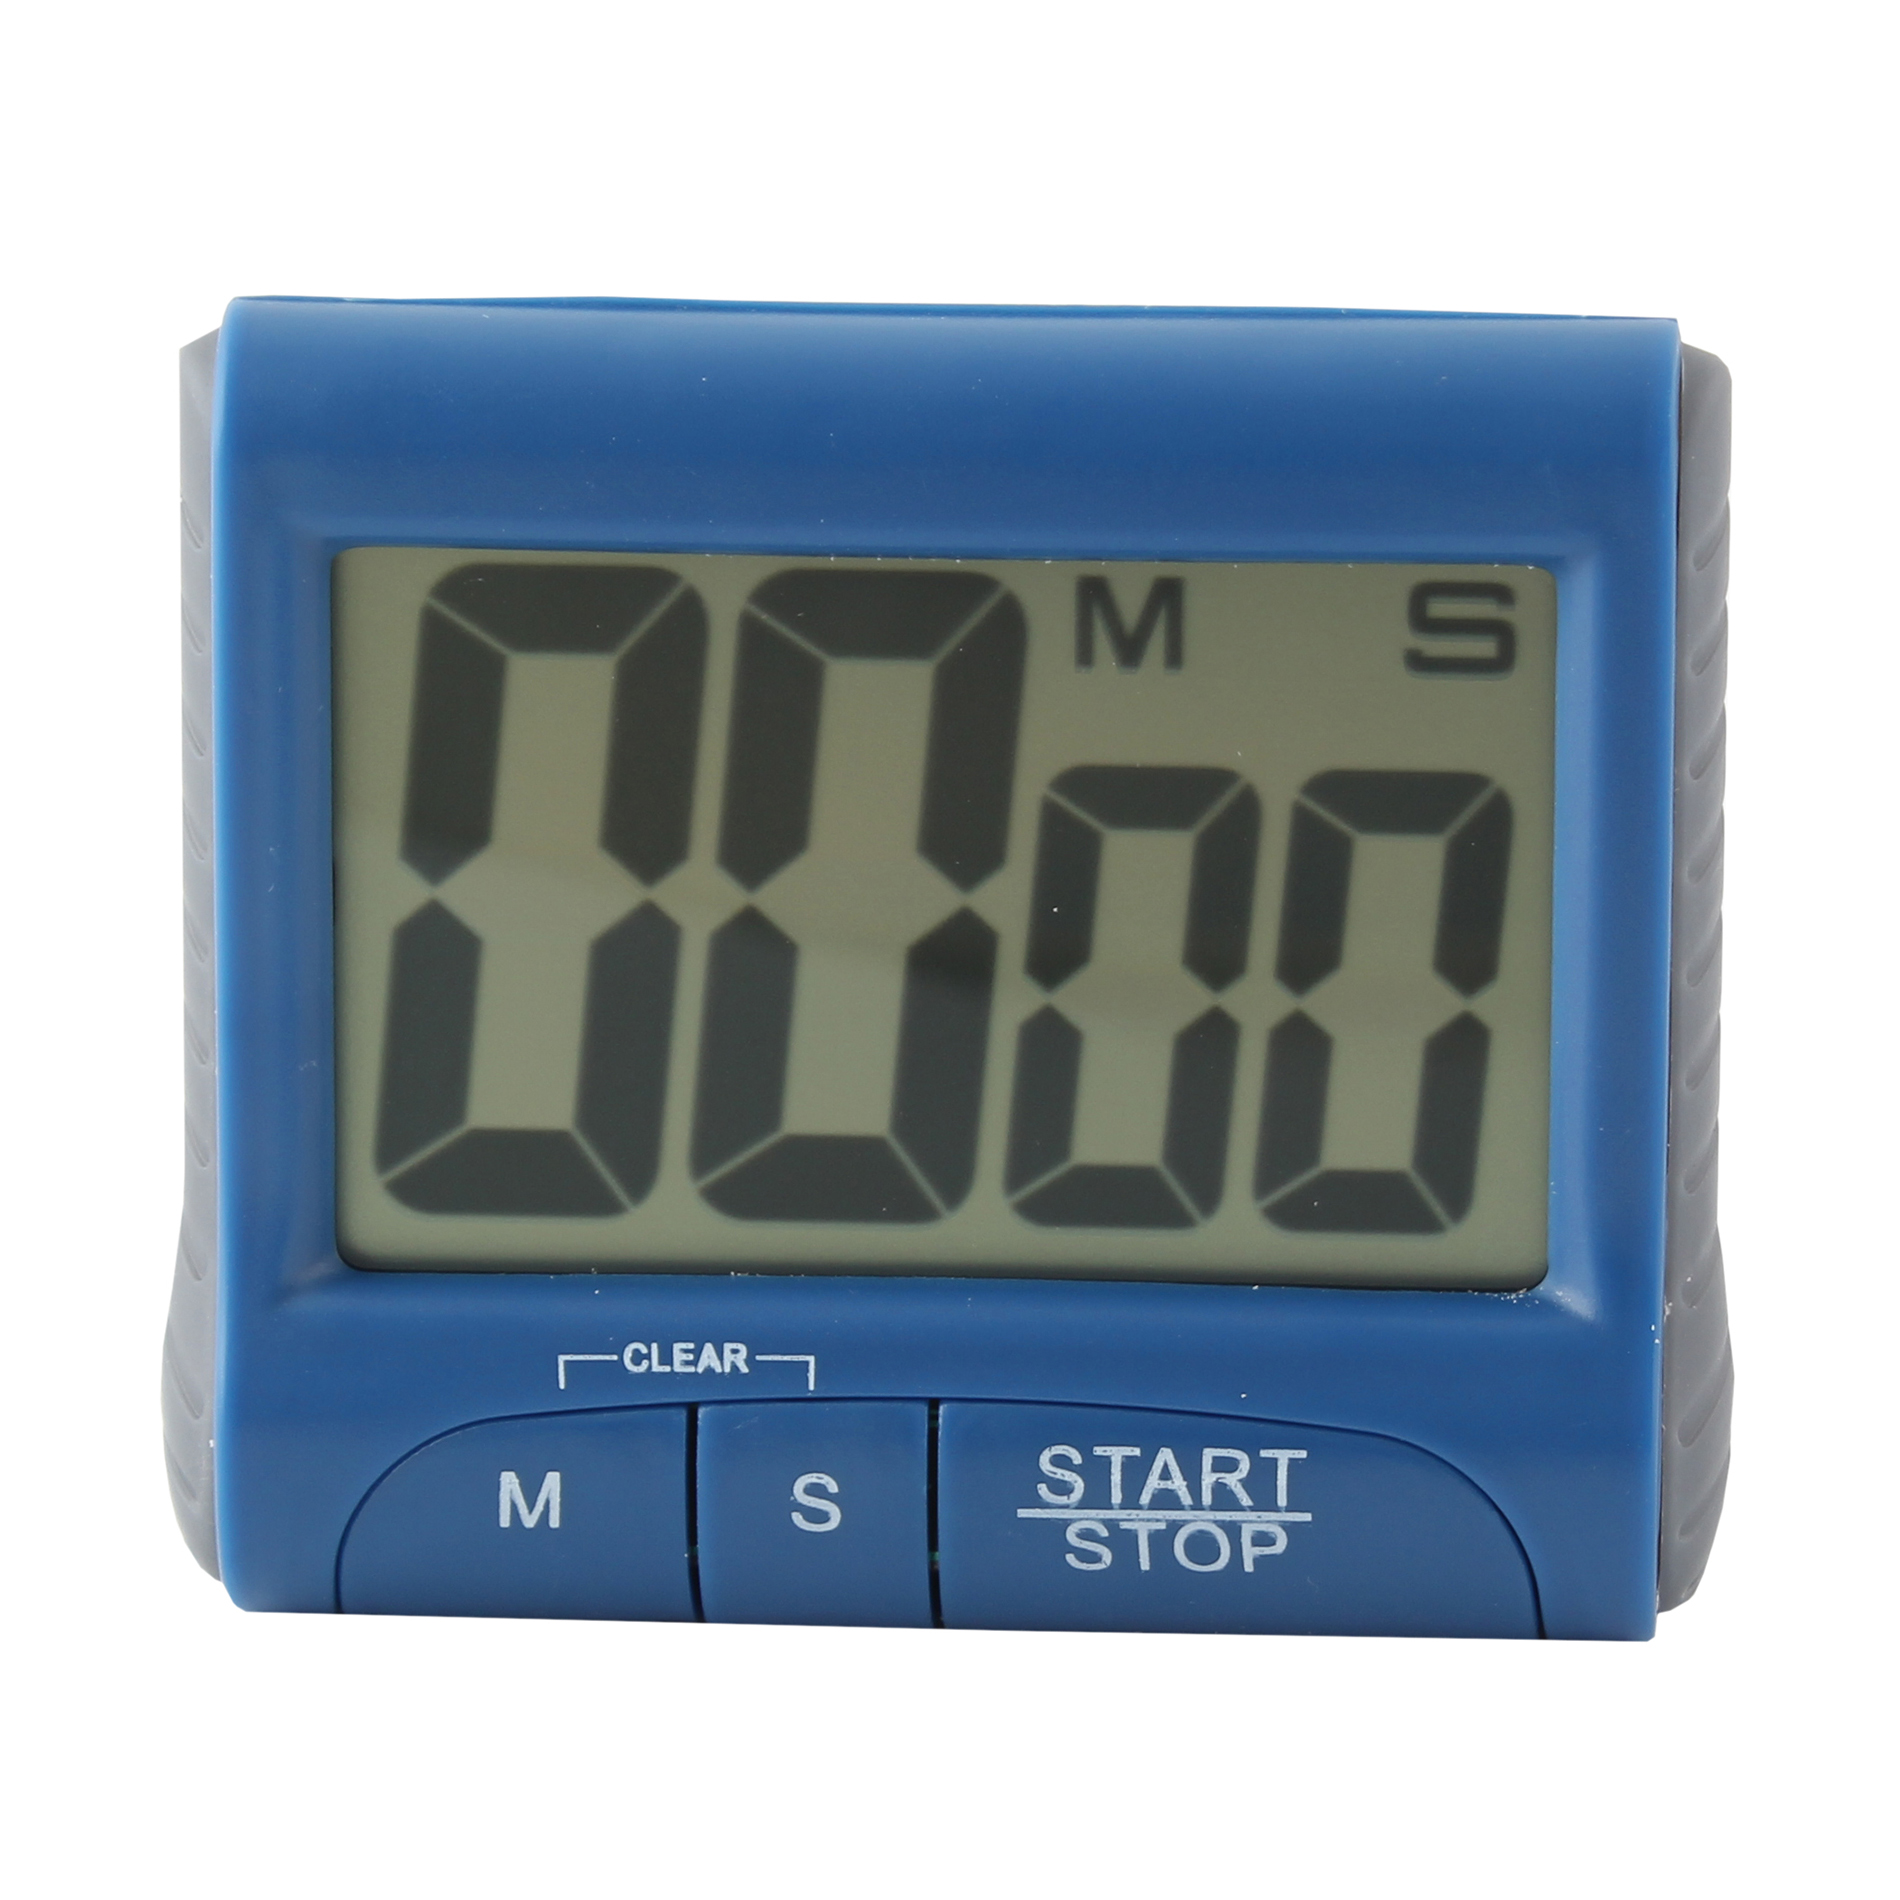 Digital Large LCD display Timer, Electronic Countdown Alarm Kitchen Timer, Blue